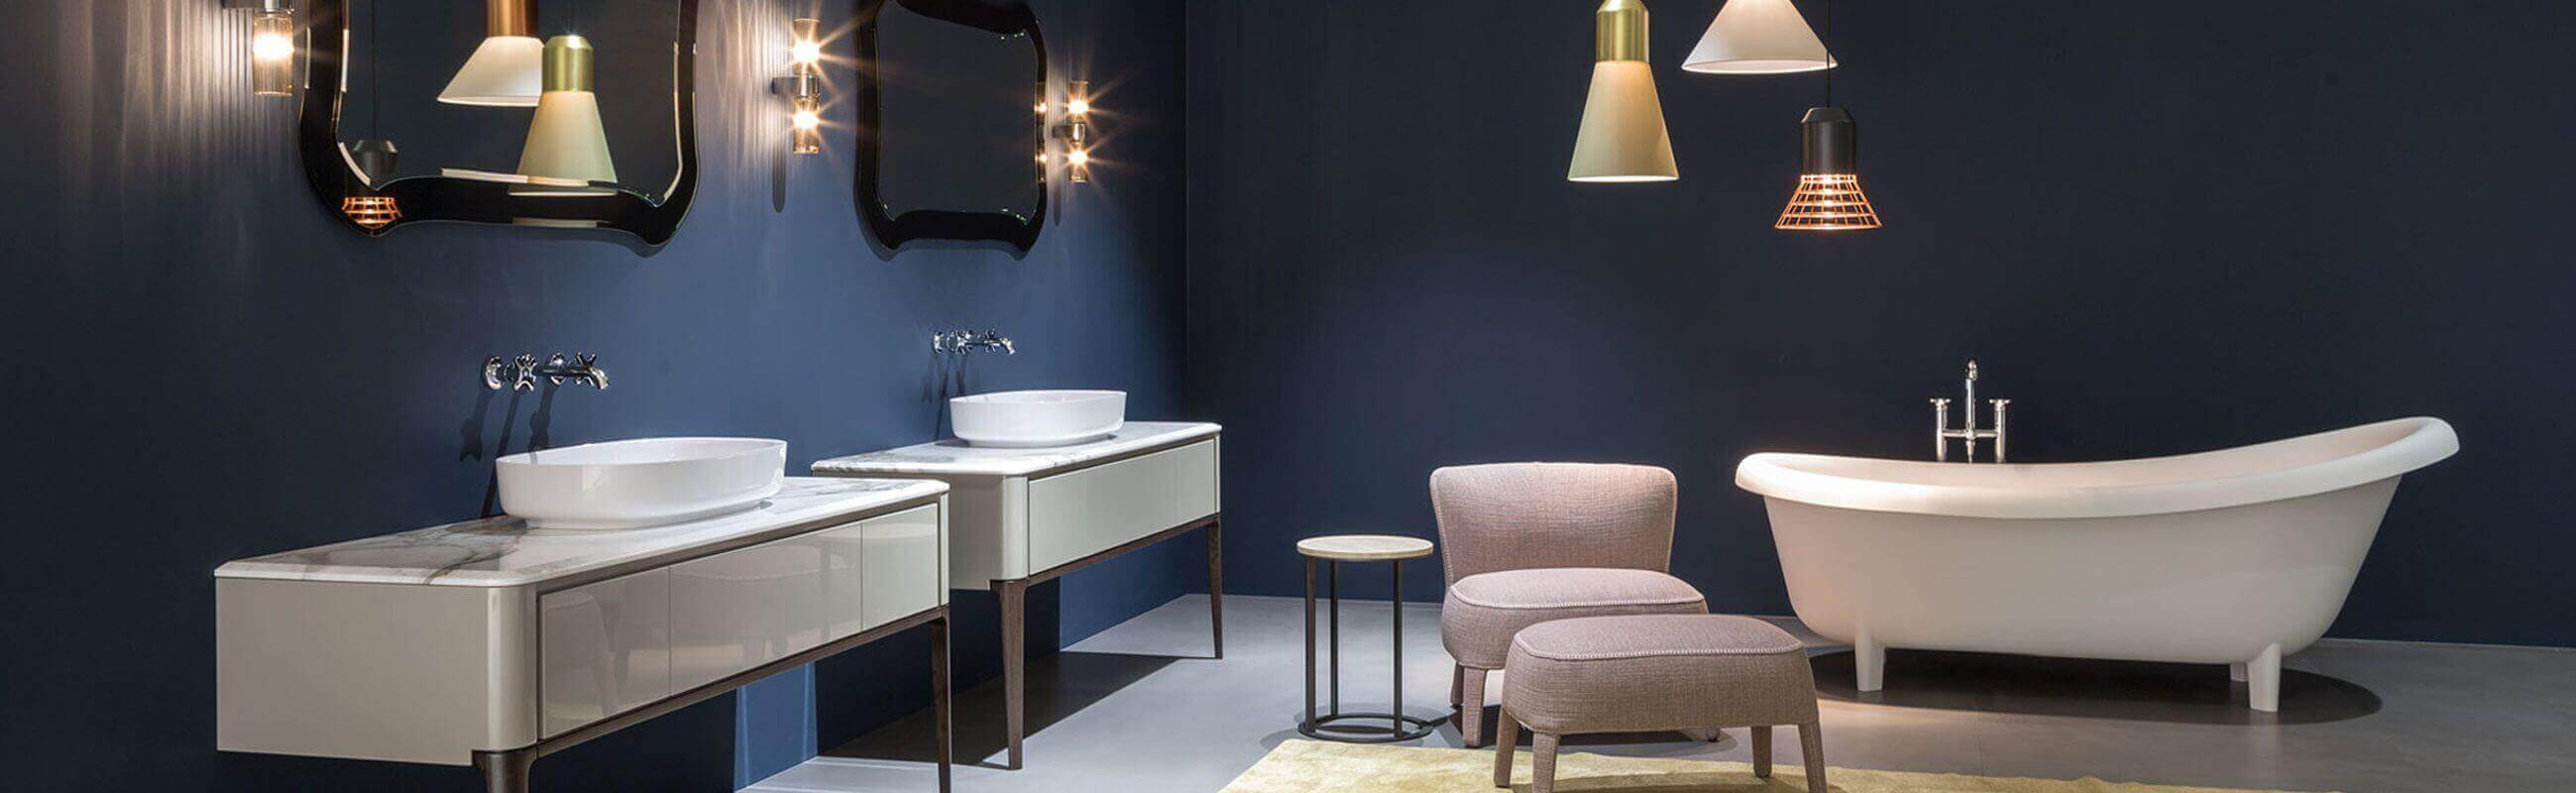 Welcome to Zest  Suppliers of luxury Bathrooms & Kitchens for 8+